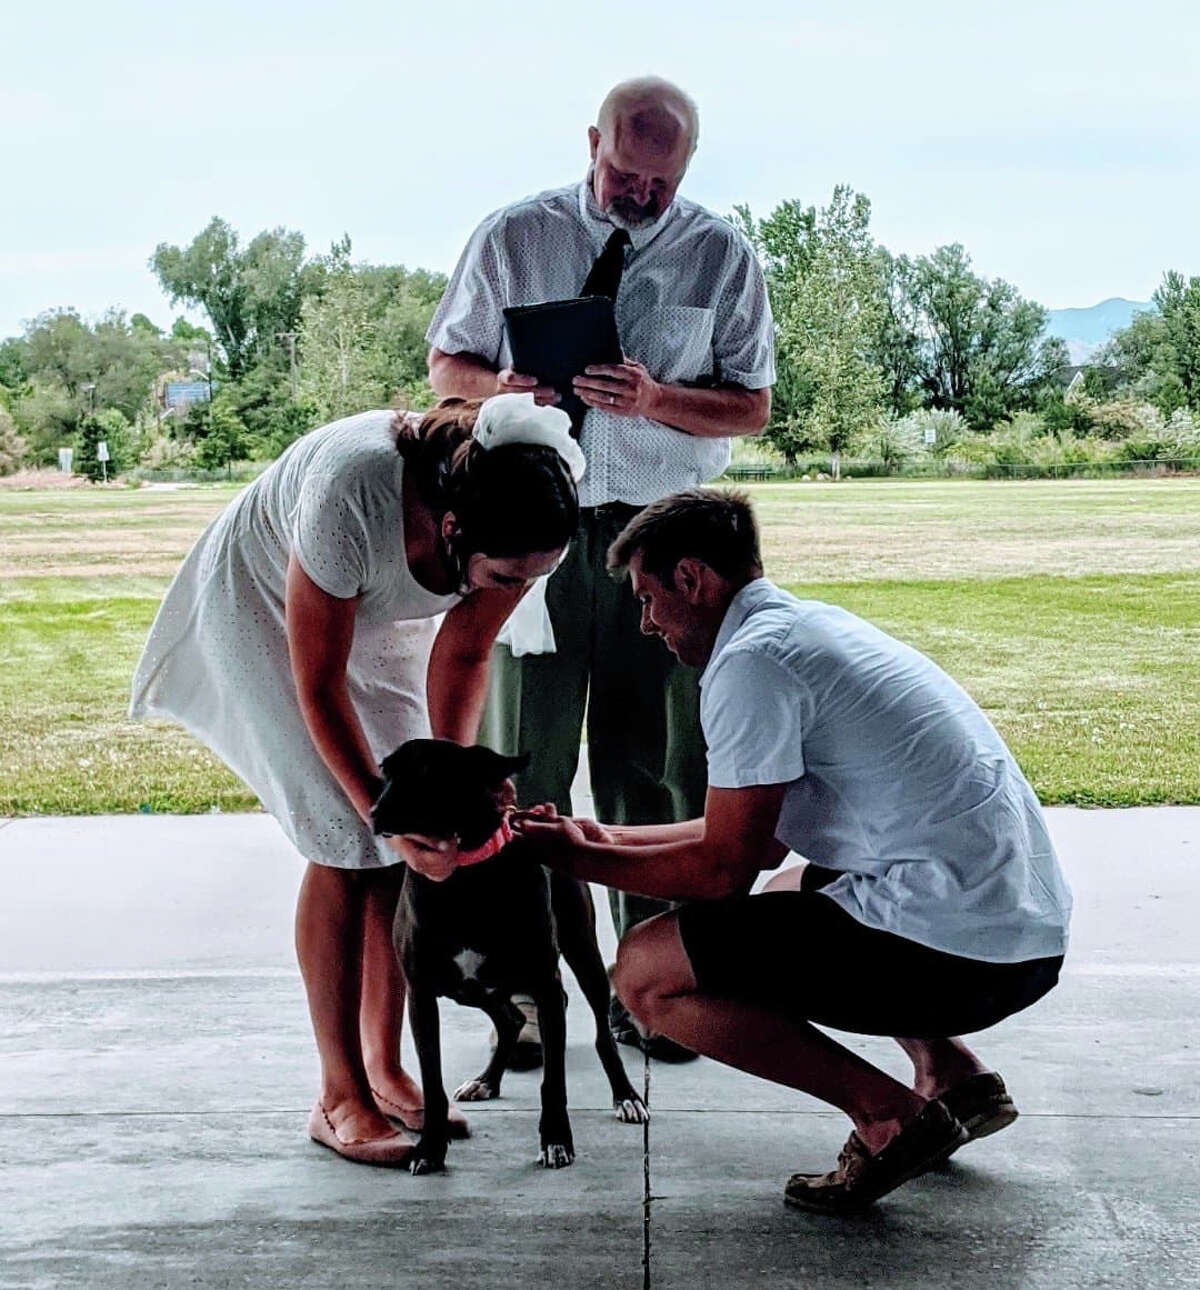 When Midland native Brett Perry, right, and his wife, Stephanie, got married in Salt Lake City, Utah, in June, their dog, Maggie, served as the ring bearer.